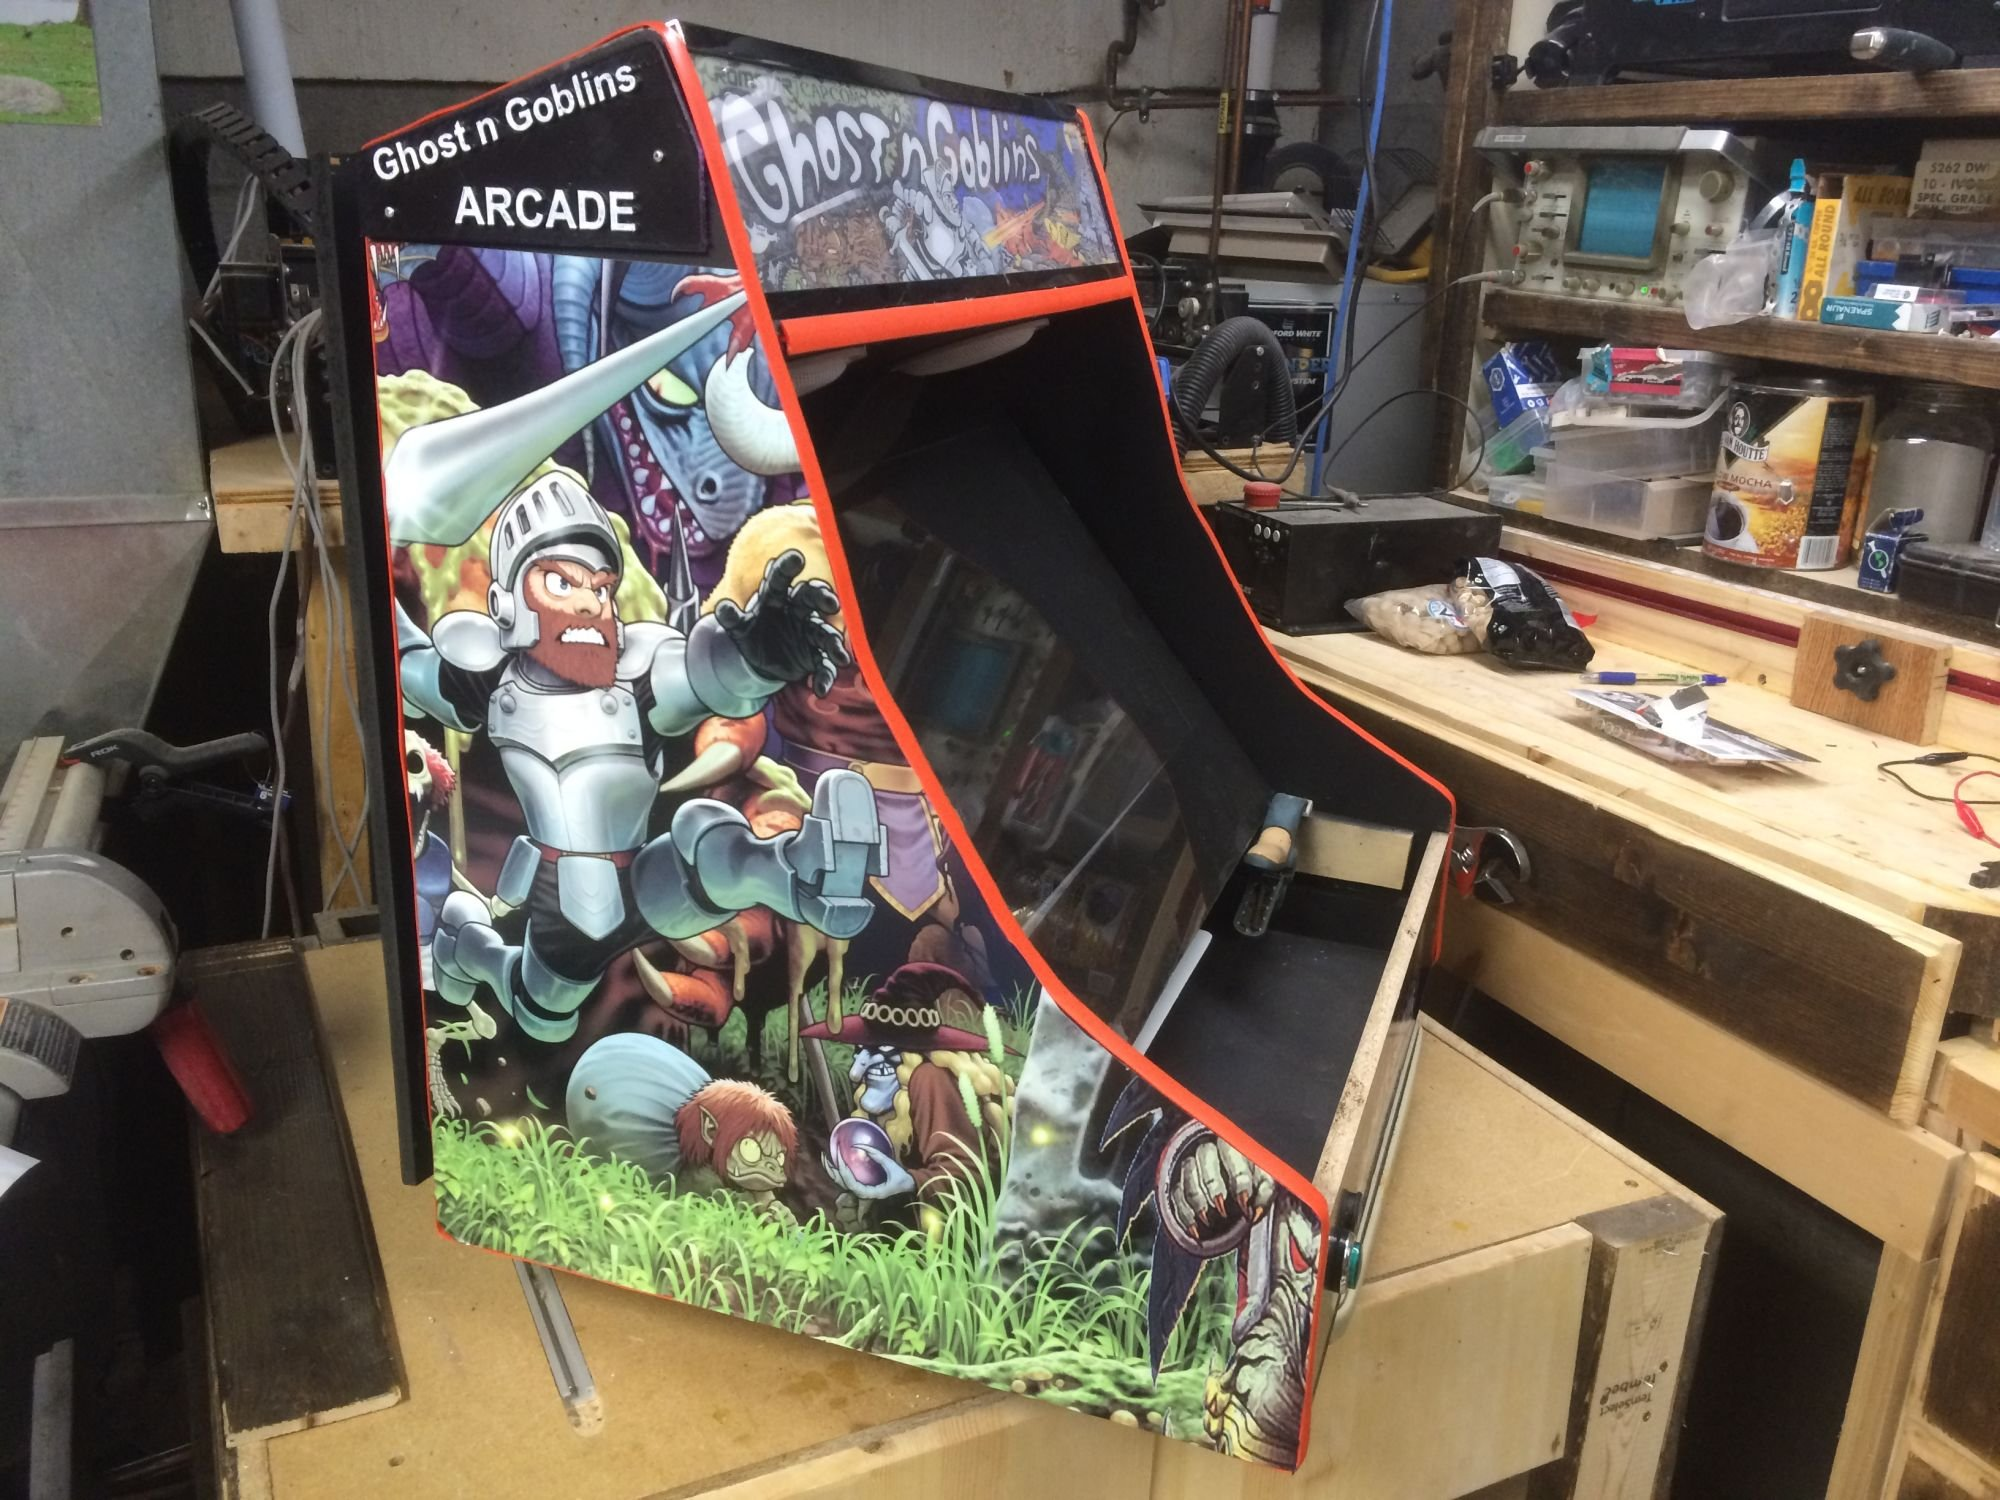 Ghost And Goblins 2 Players Arcade Punks Worldwide